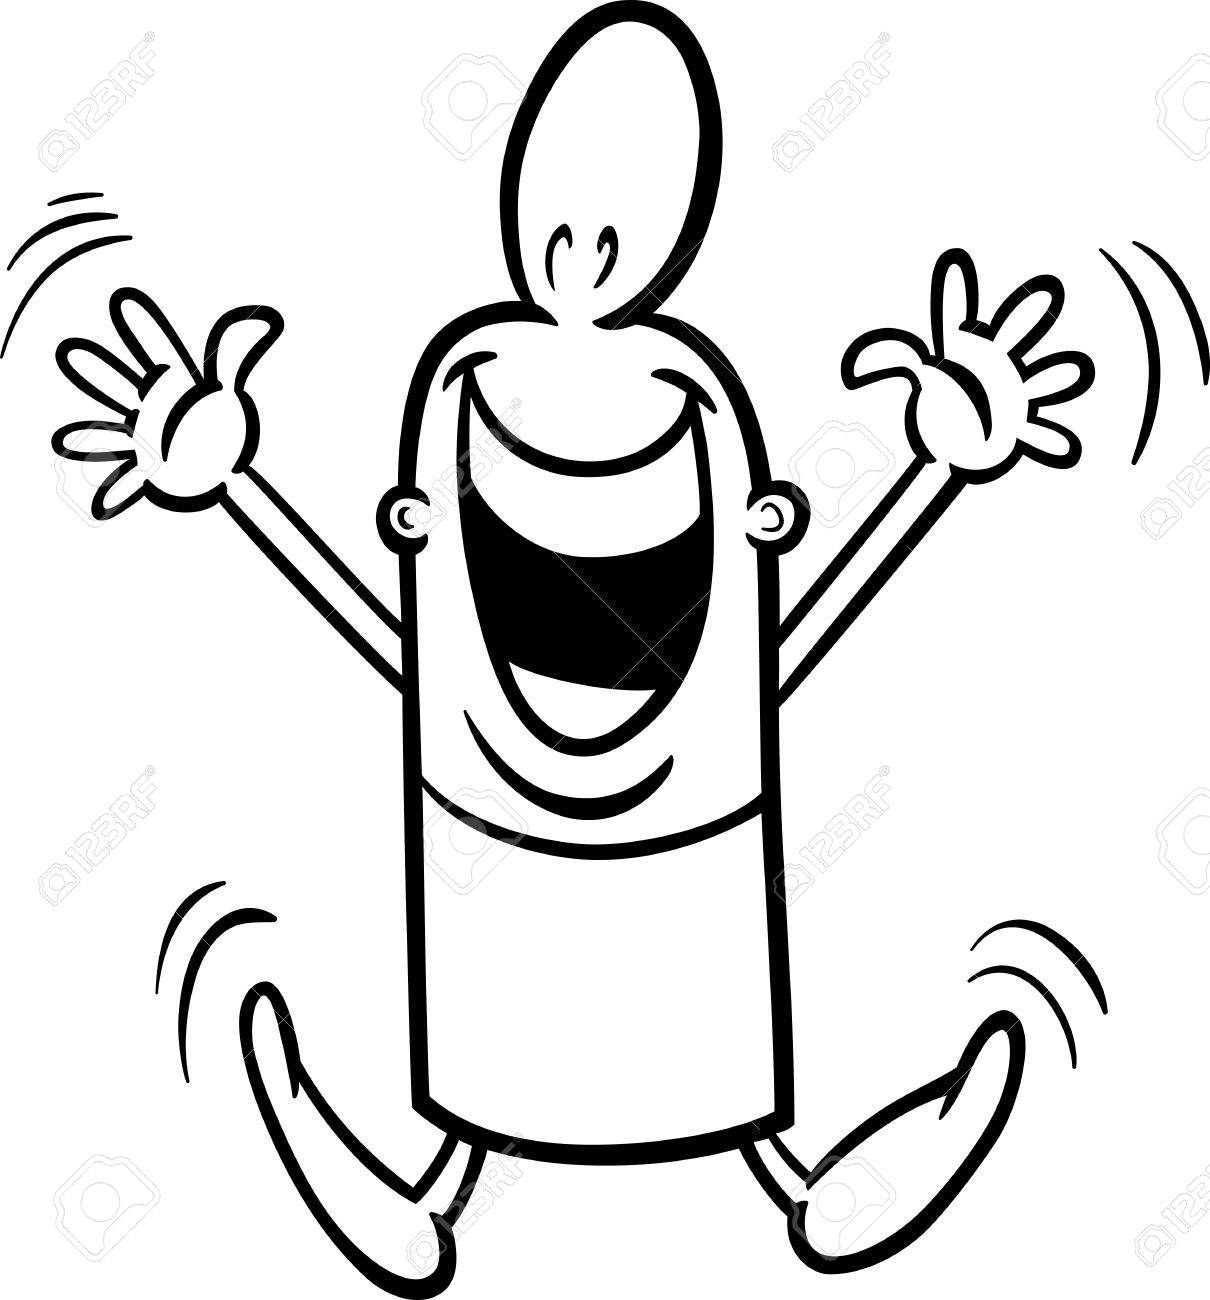 Excited Clipart.